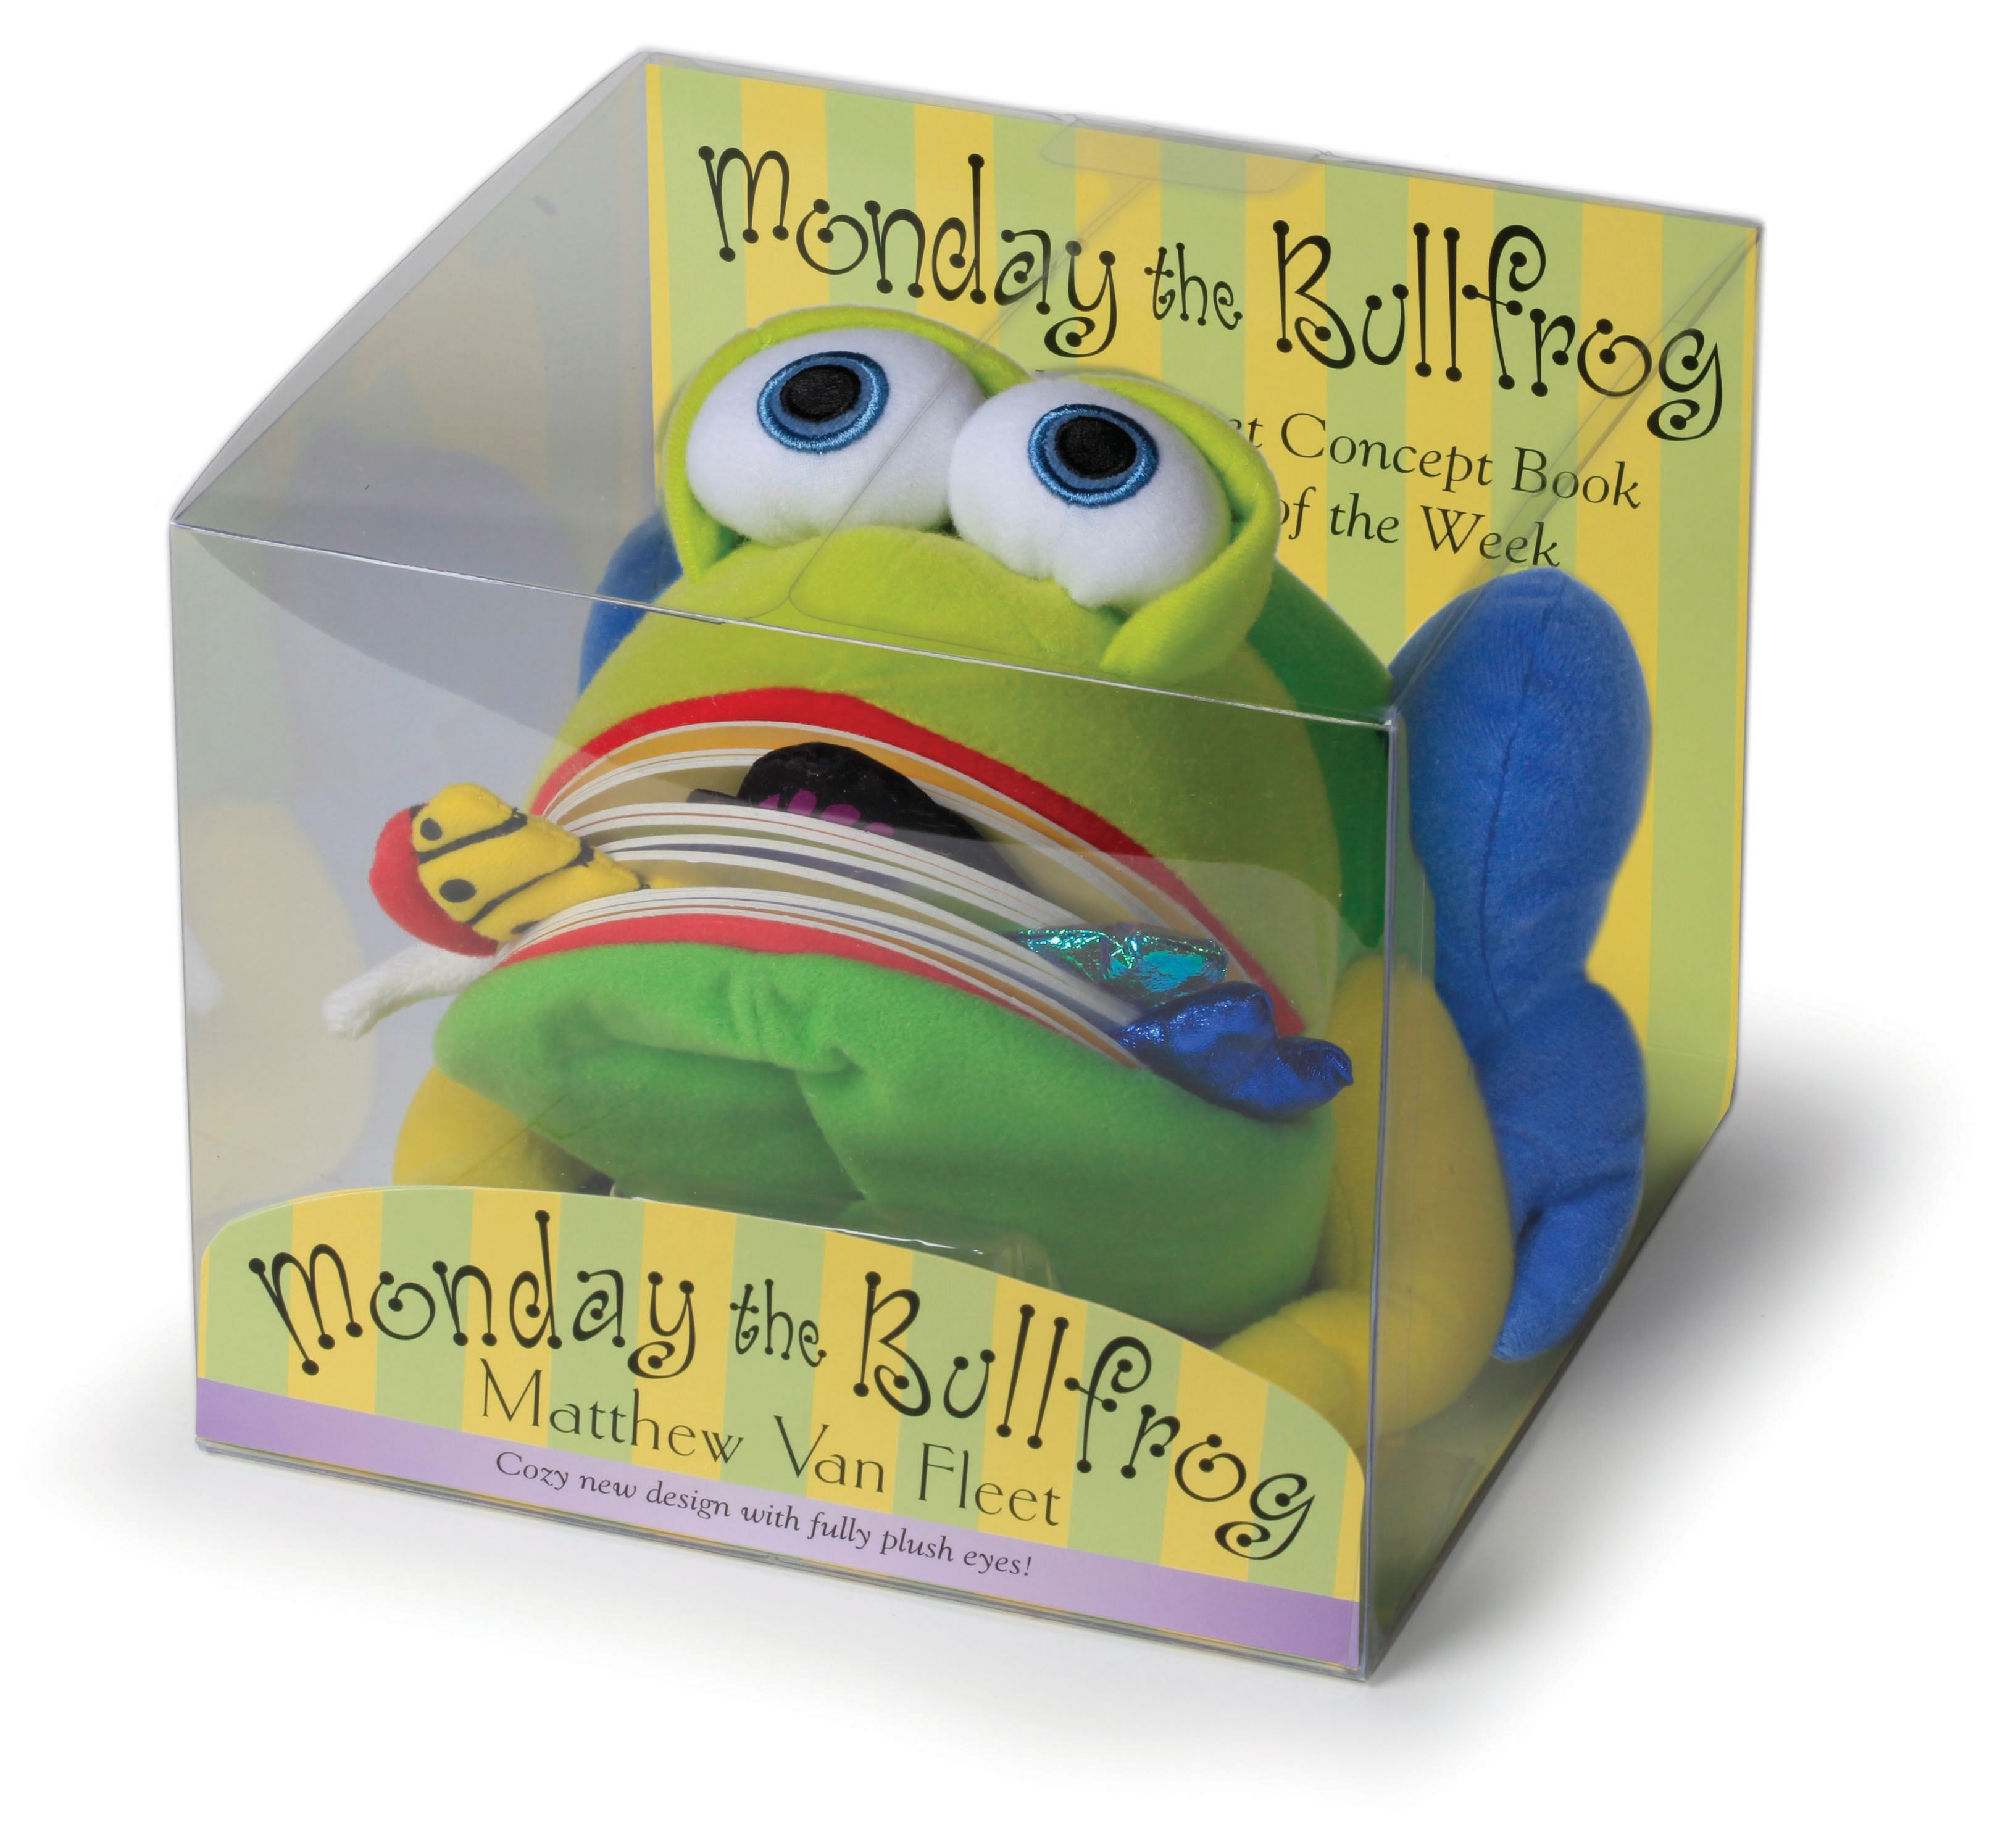 Monday the Bullfrog : A Huggable Puppet Concept Book About the Days of the Week